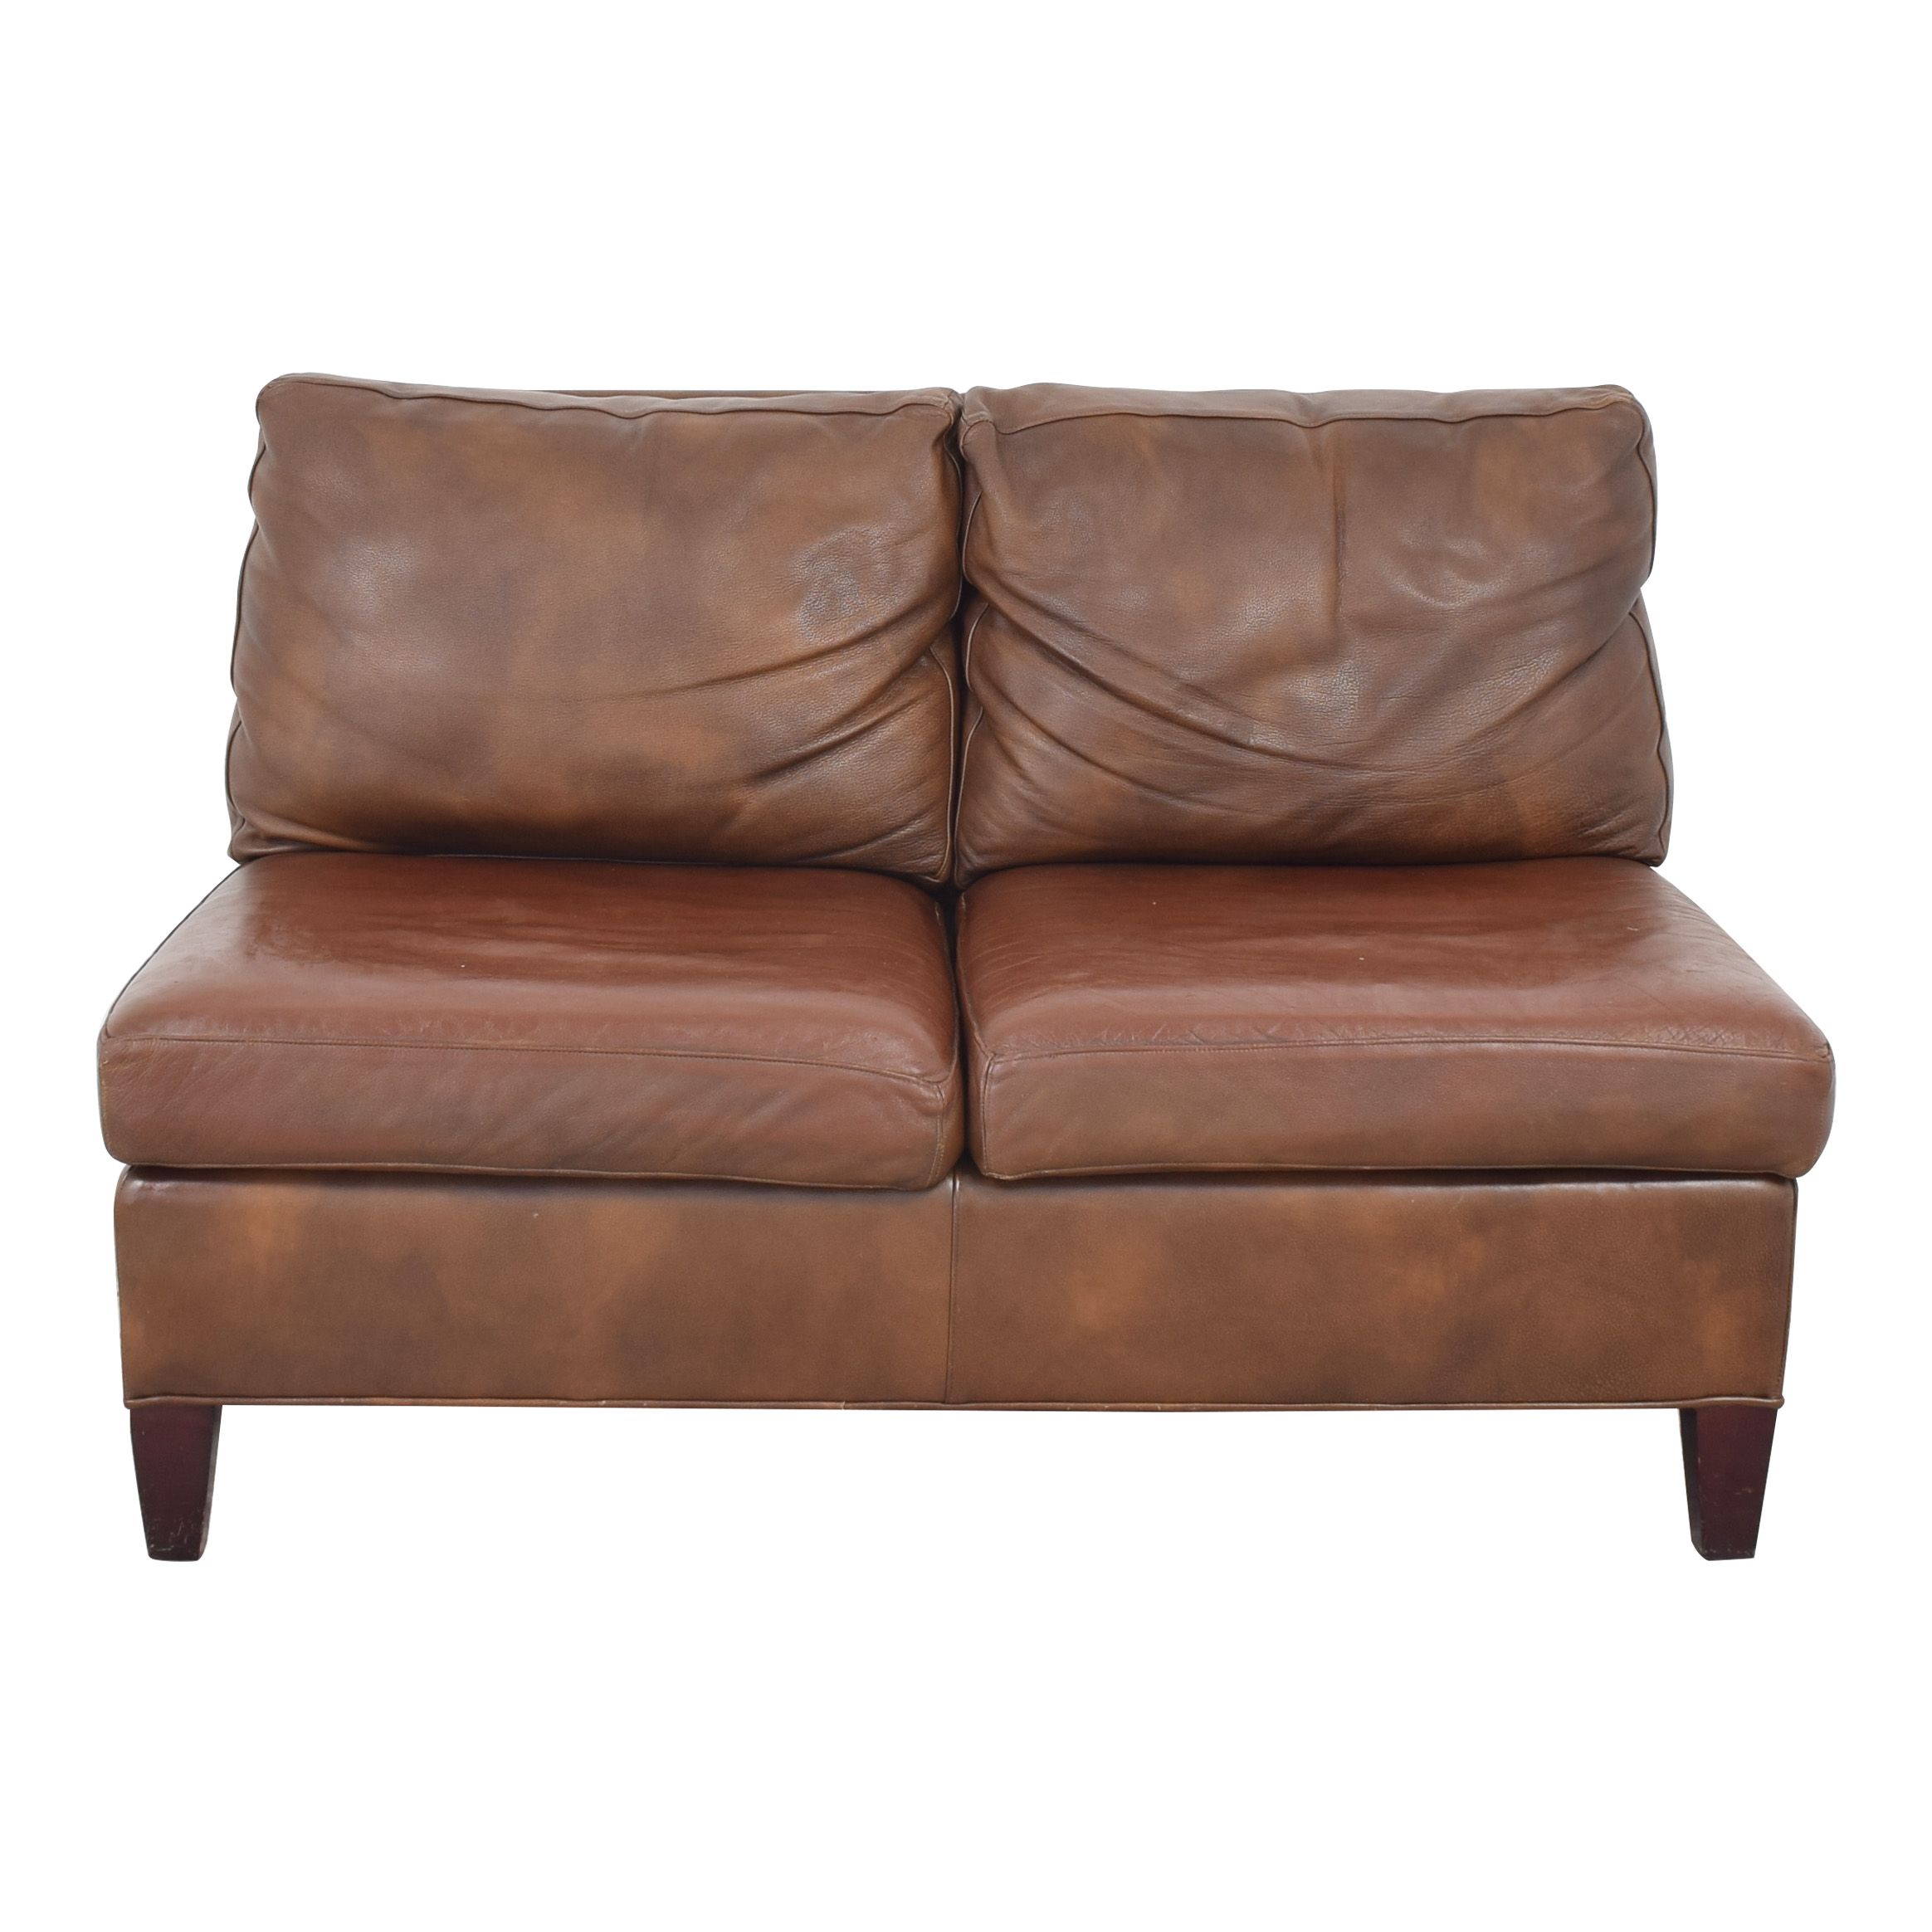 77 Off Mckinley Leather Furniture